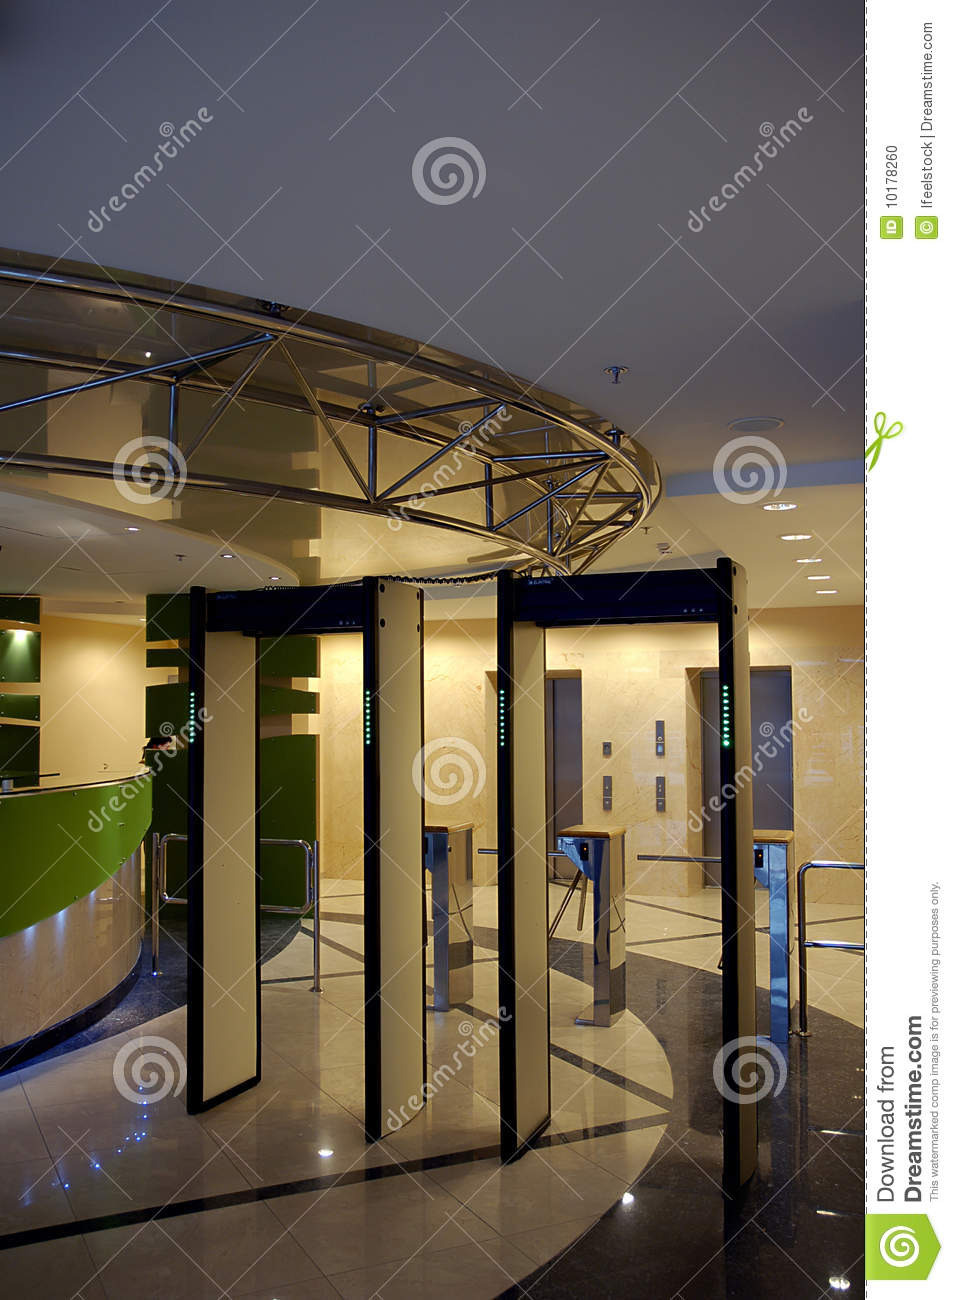 Building Entrance Gate Design Unique Entrance with Security Gate In Business Building Stock